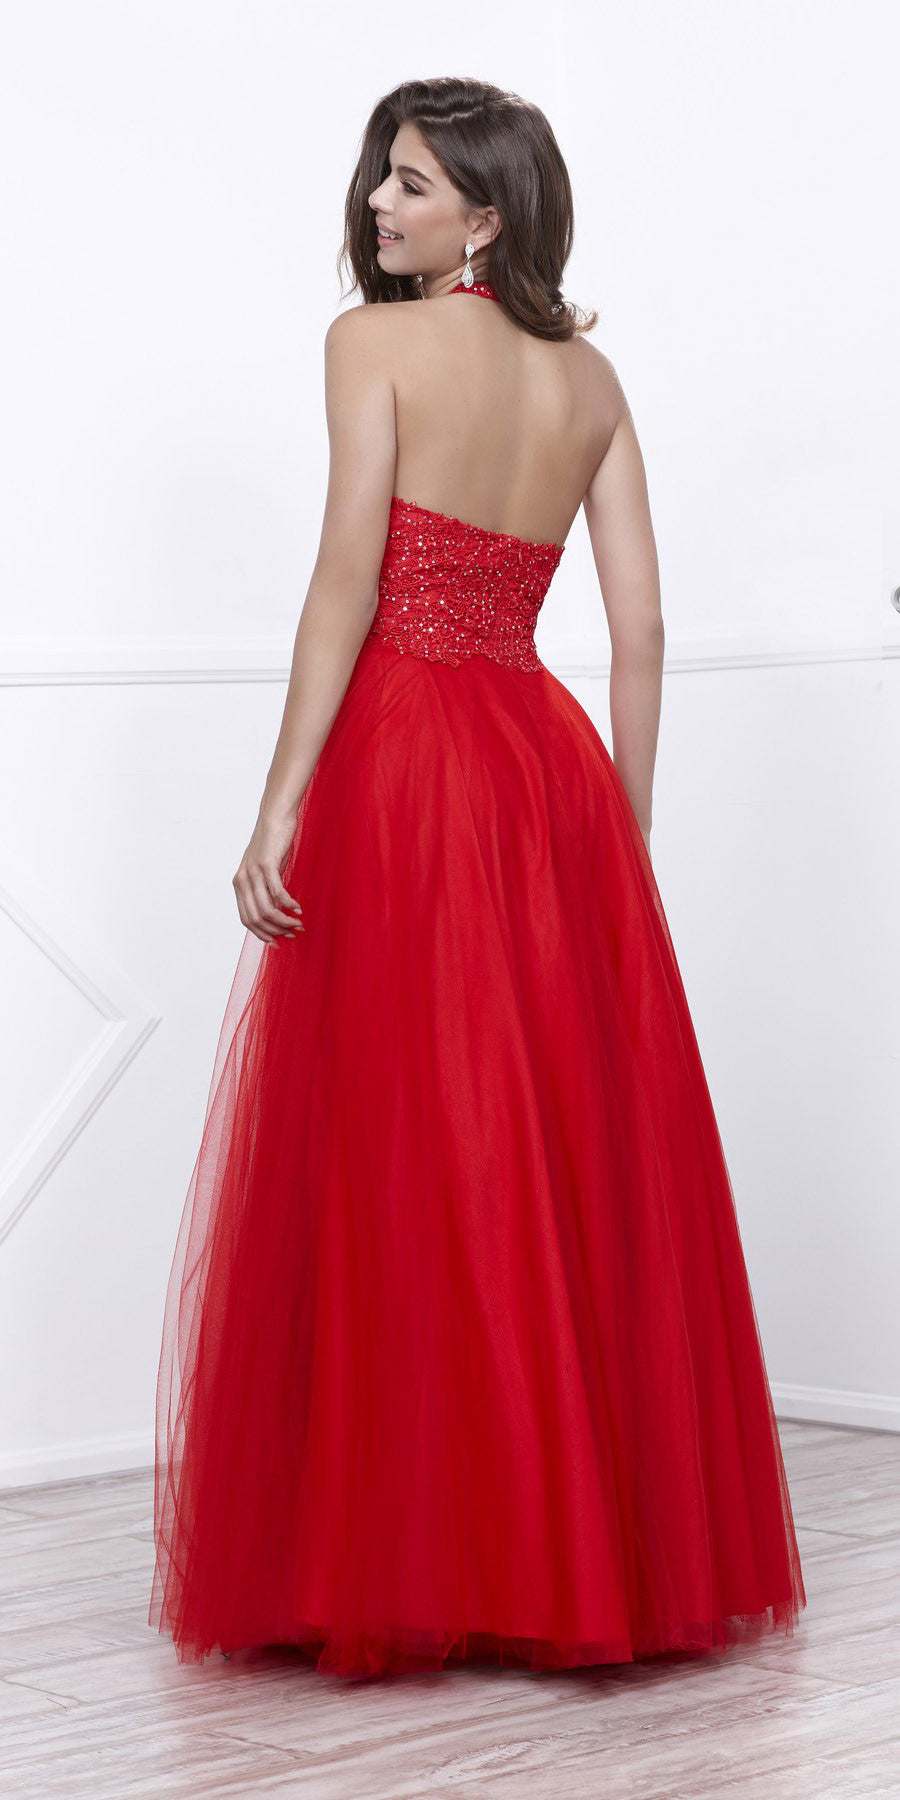 Halter Prom Gown Red Tulle Skirt Poofy A Line Lace Bodice